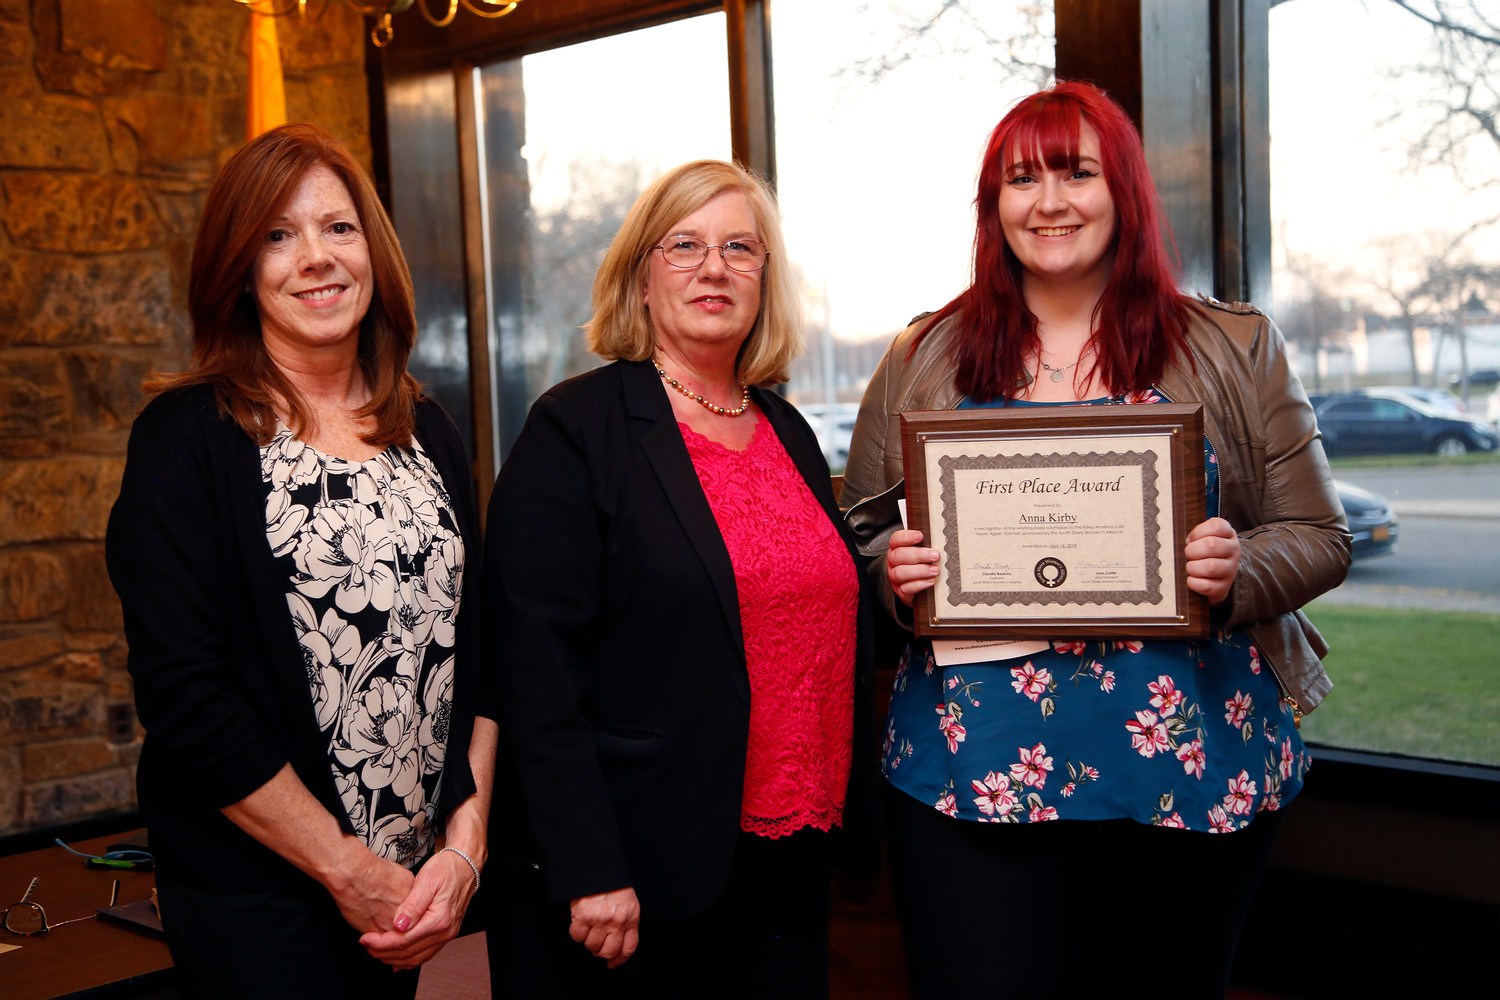 Anna Kirby from Calhoun was presented with the first place essay award by SSWA President Claudia Borecky, center, and Joan Carter.